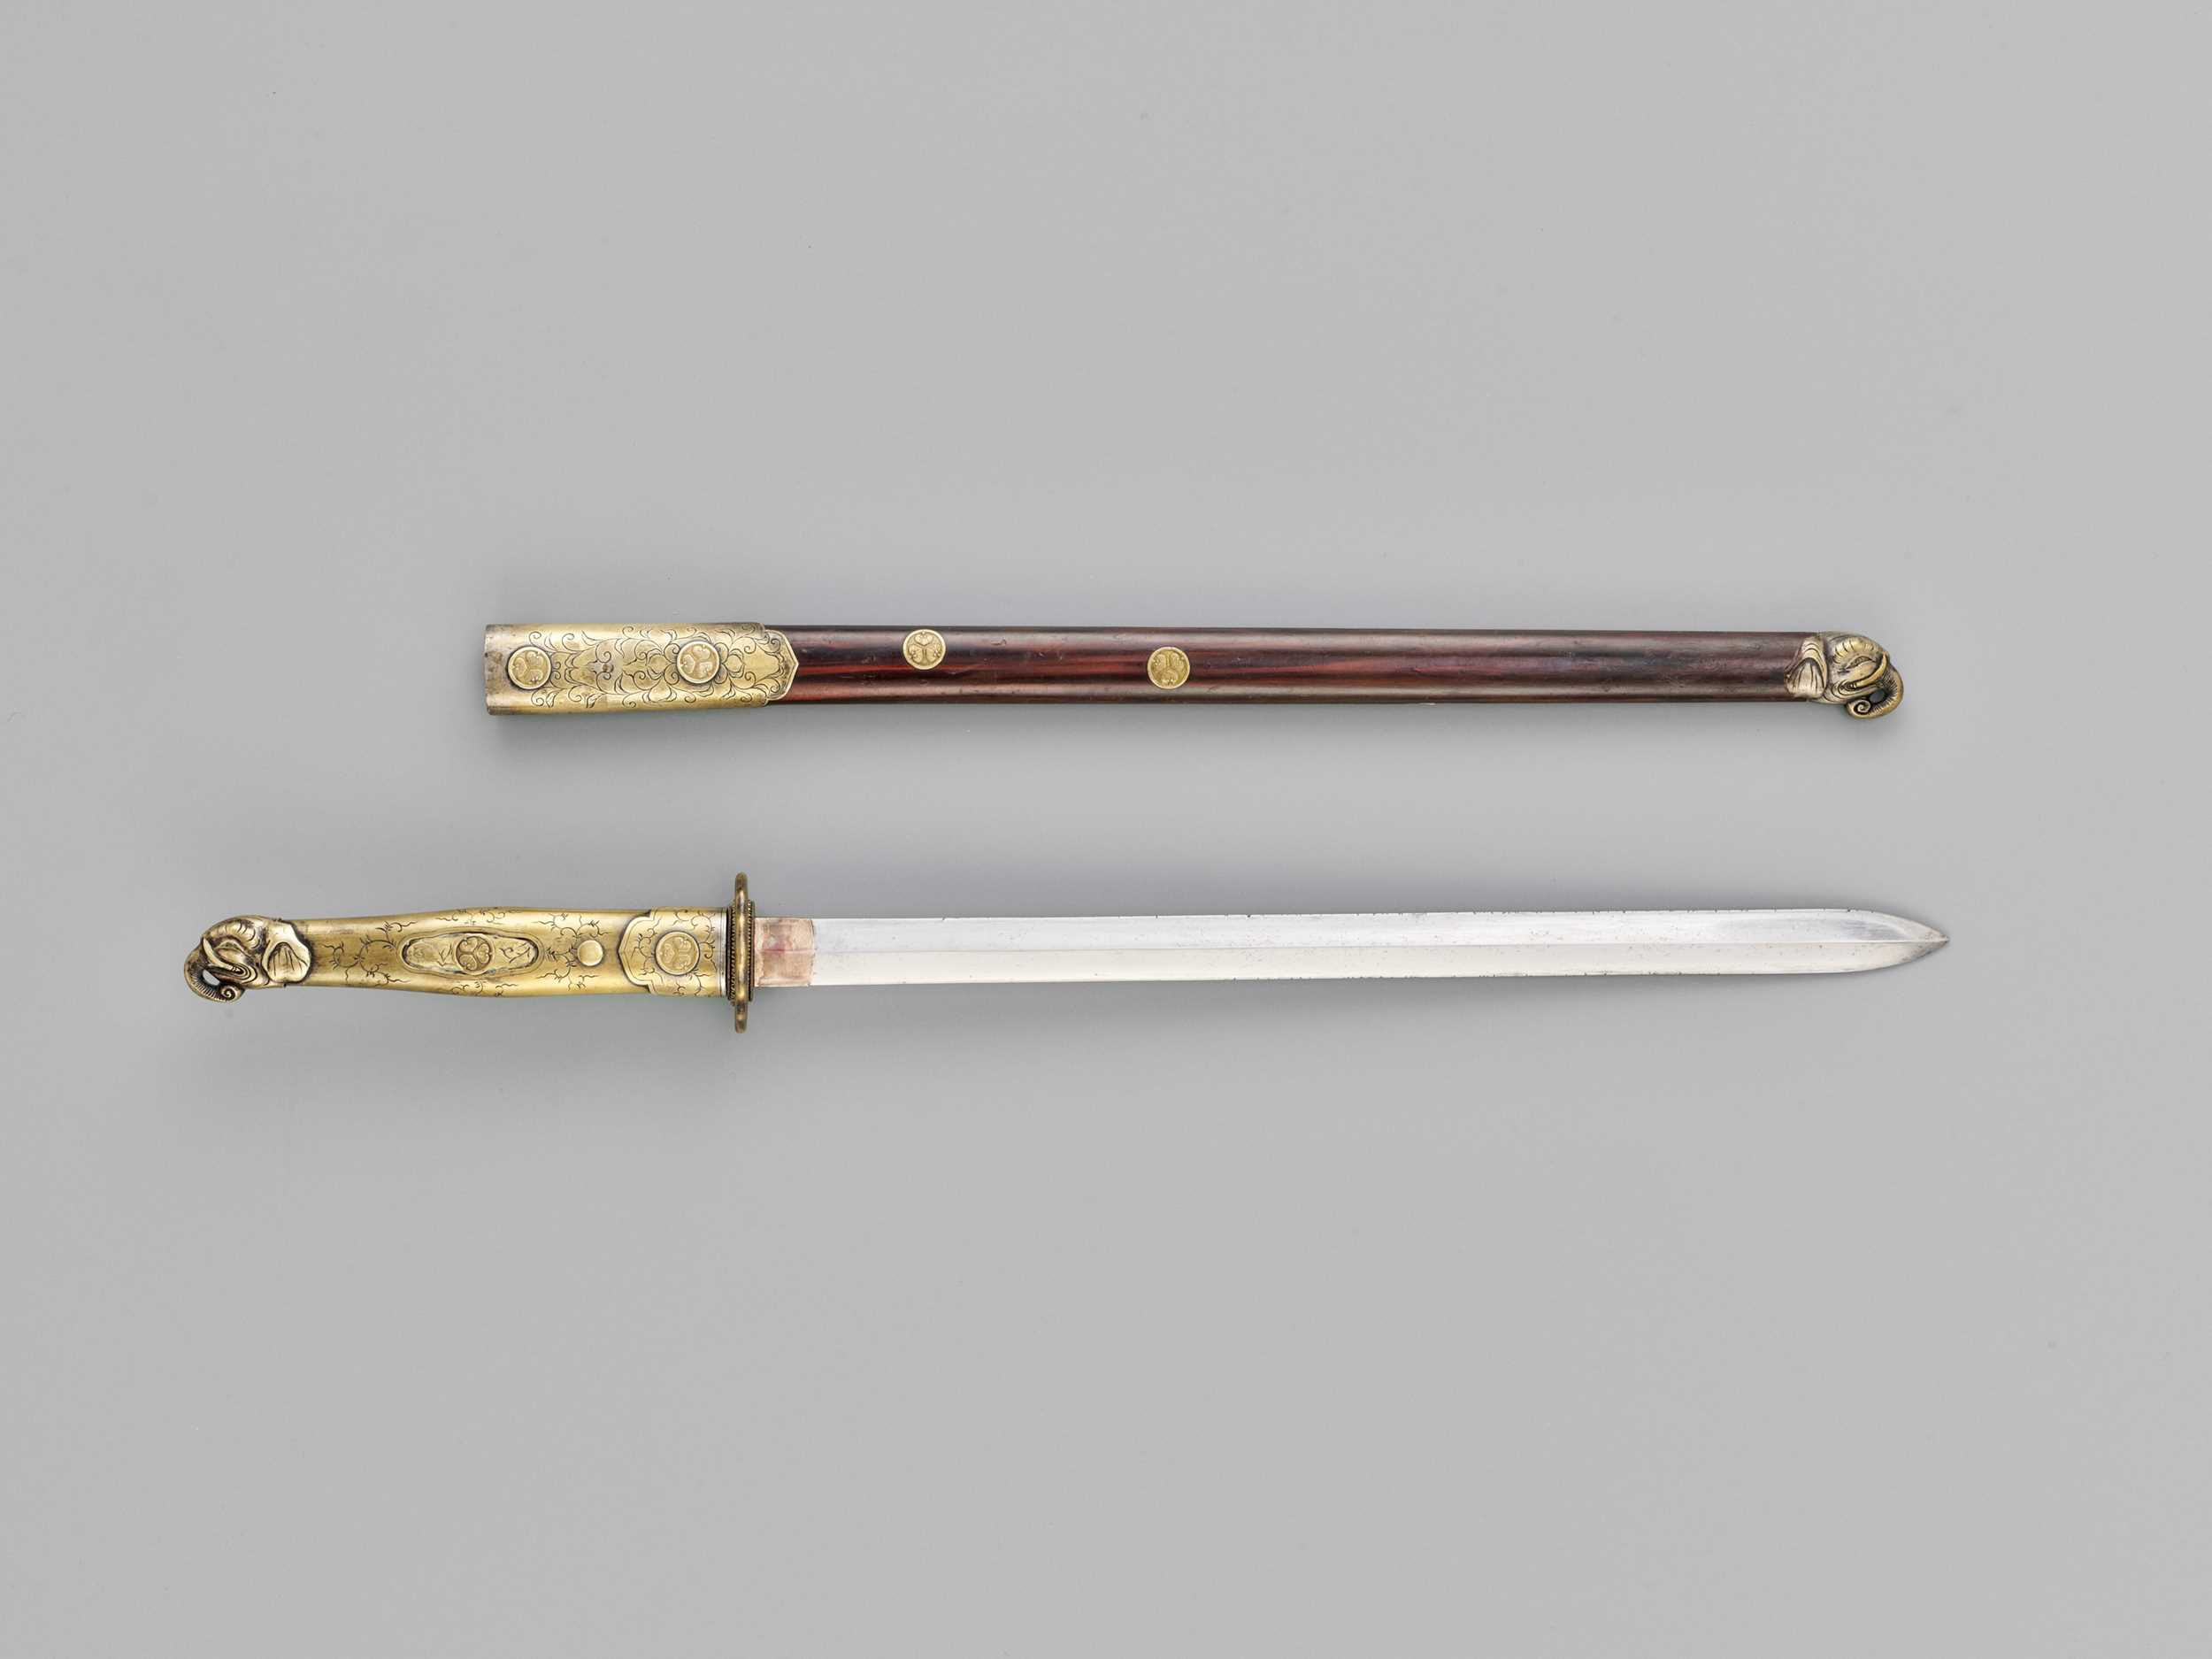 Lot 55 - A CEREMONIAL KEN IN MOUNTS WITH TOKUGAWA MONS